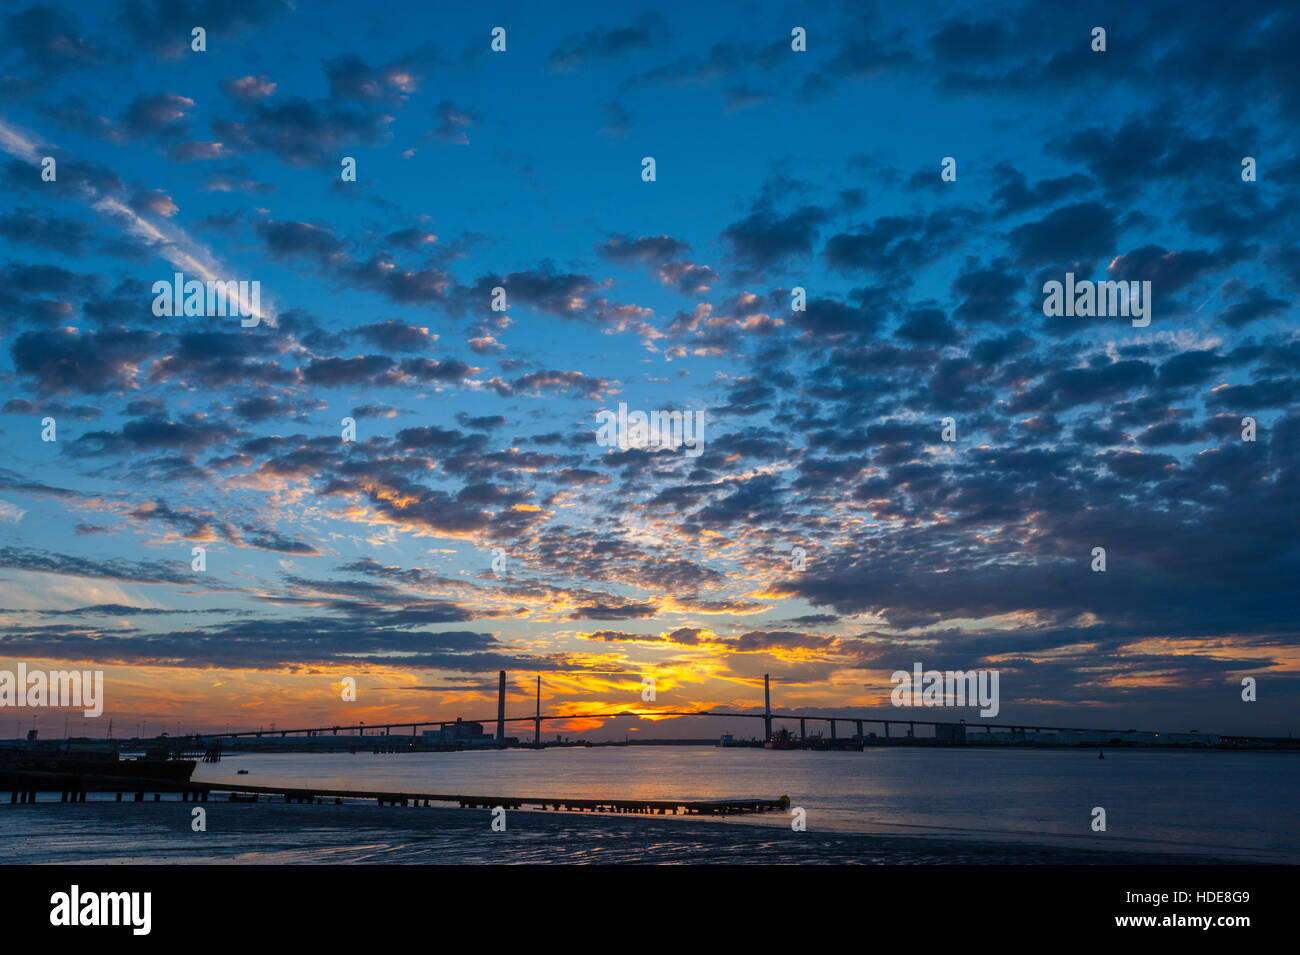 The dartford crossing bridge at sunset from the promenade at Greenhithe kent. - Stock Image